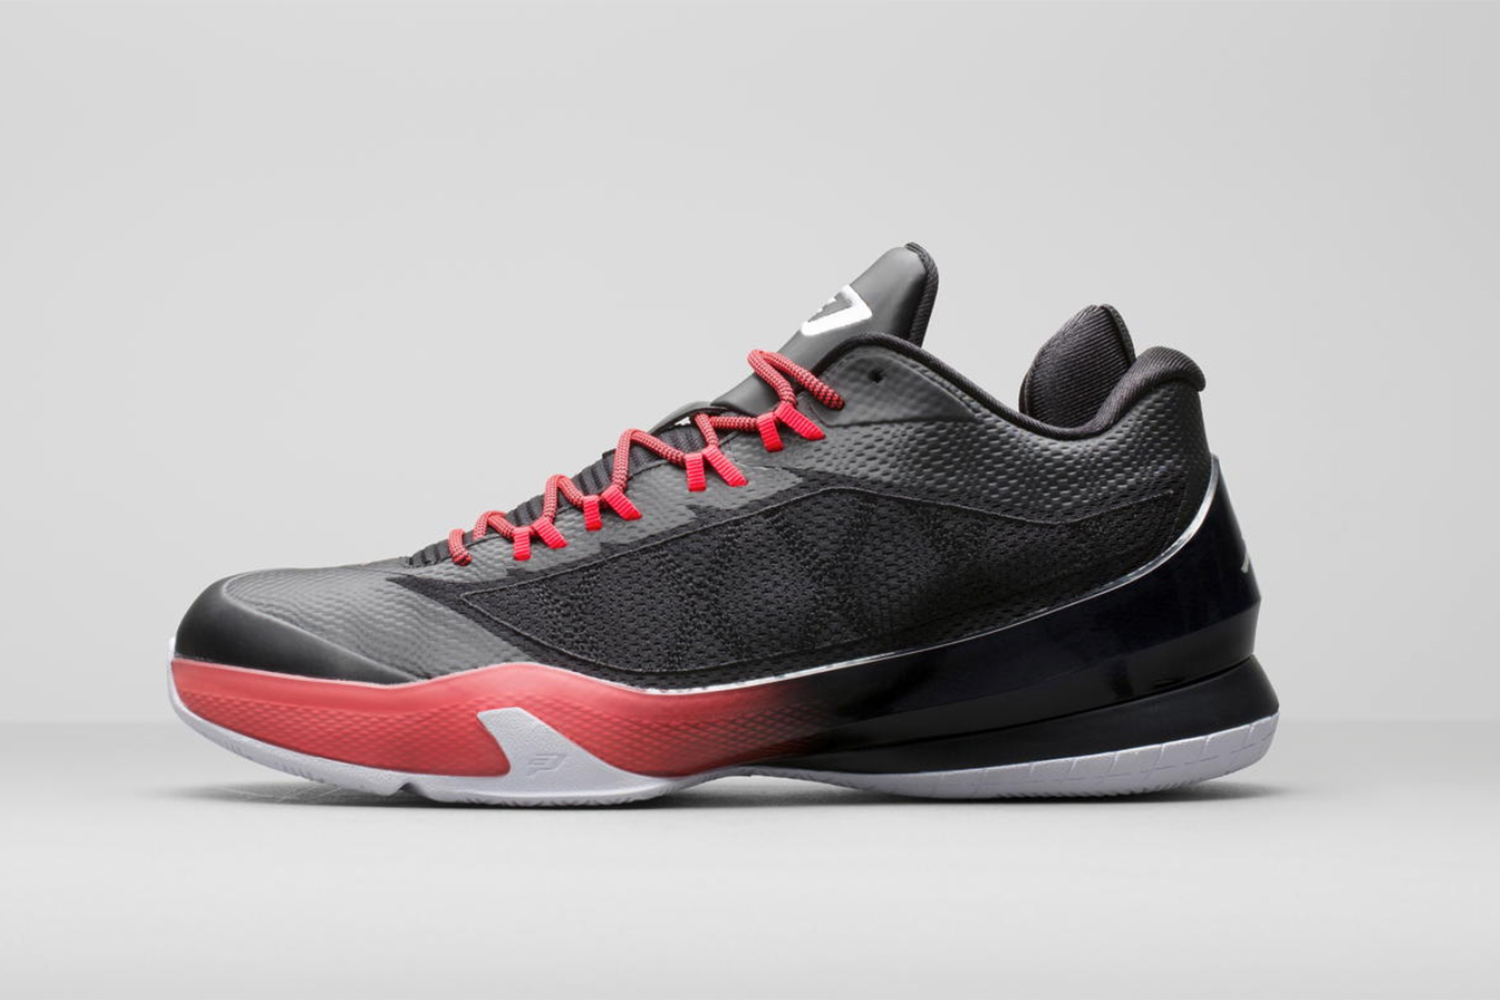 Everyone needs some minimalistic visuals in their basketball shoe repertoire. The eighth Chris Paul signature from Jordan Brand offers that up. With a unique 5/8 height and innersleeve for sock-like fit, the technology stays understated along with the aesthetic.